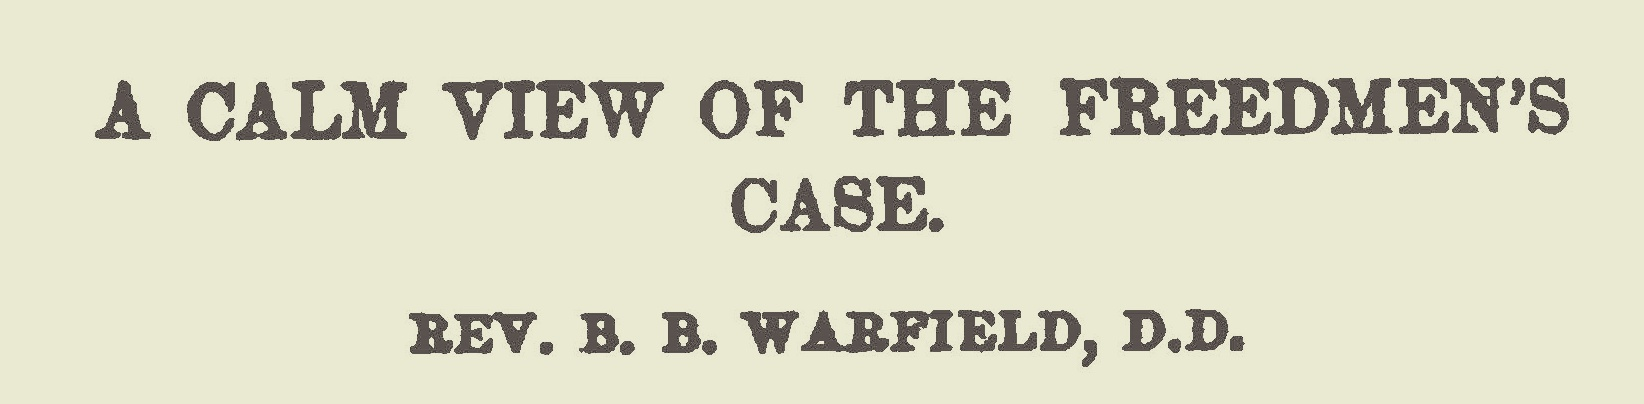 Warfield, Benjamin Breckinridge, A Calm View of the Freedman's Case Title Page.jpg